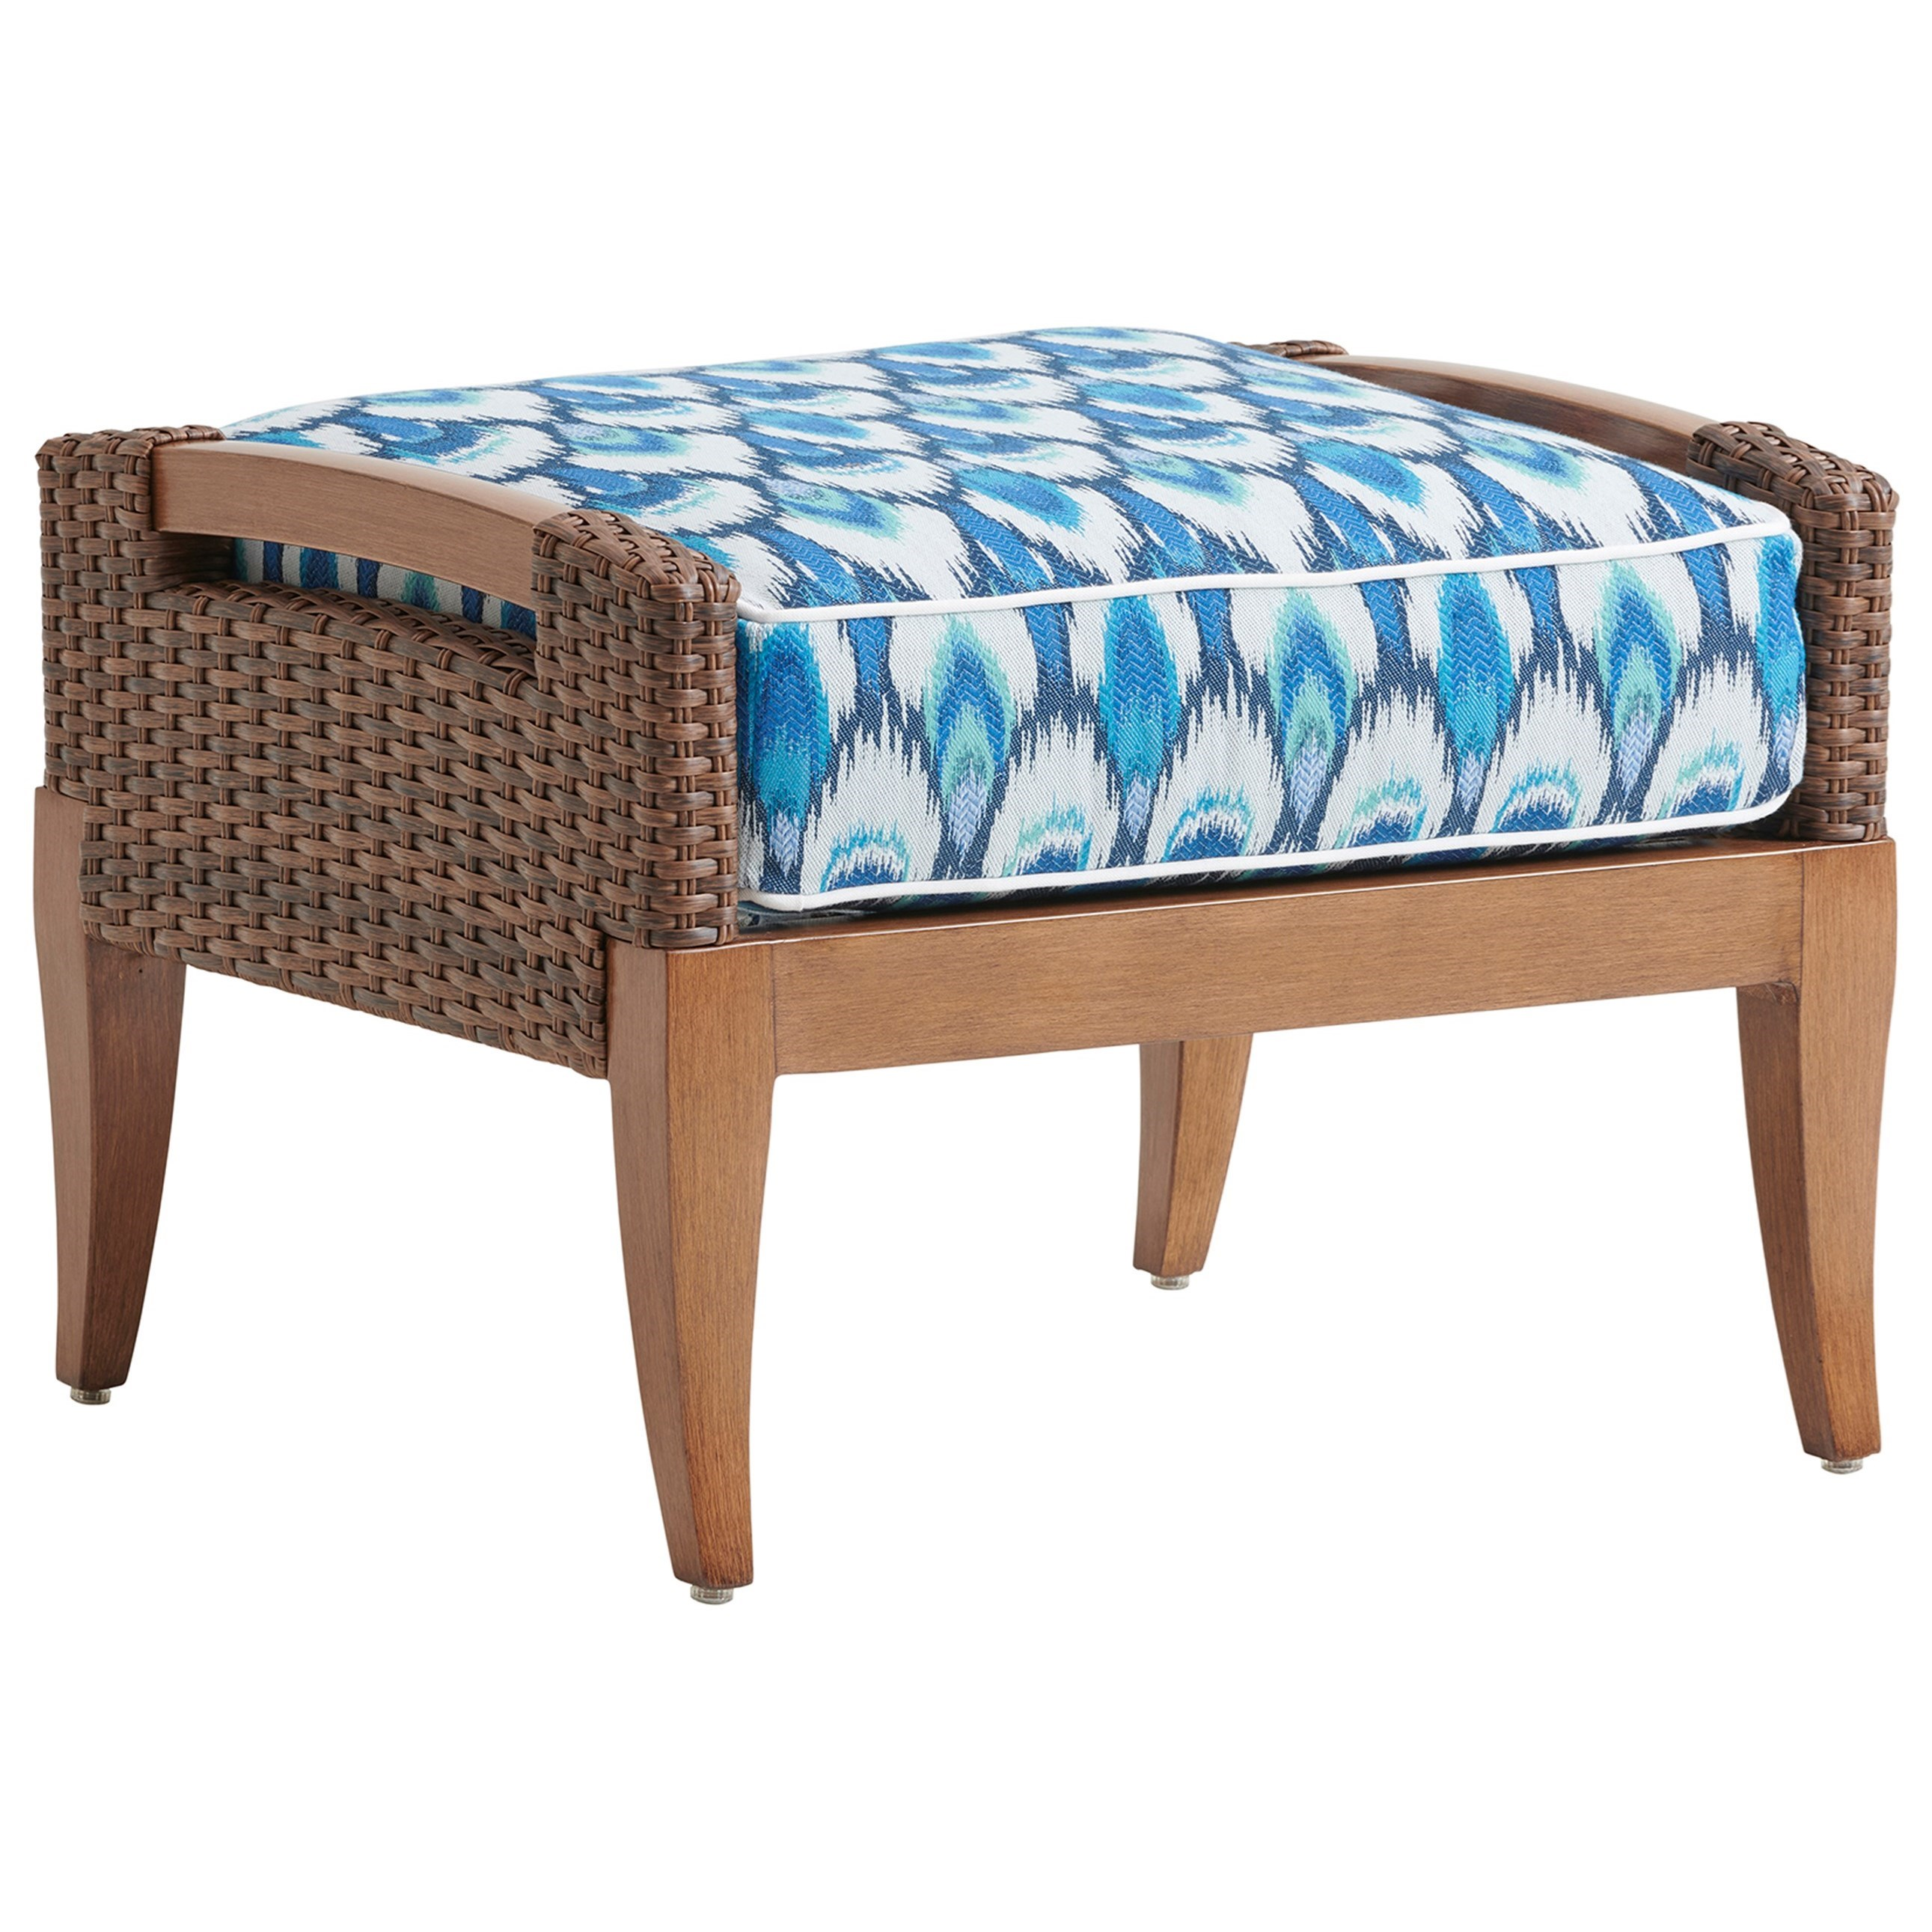 Harbor Isle Ottoman by Tommy Bahama Outdoor Living at Baer's Furniture